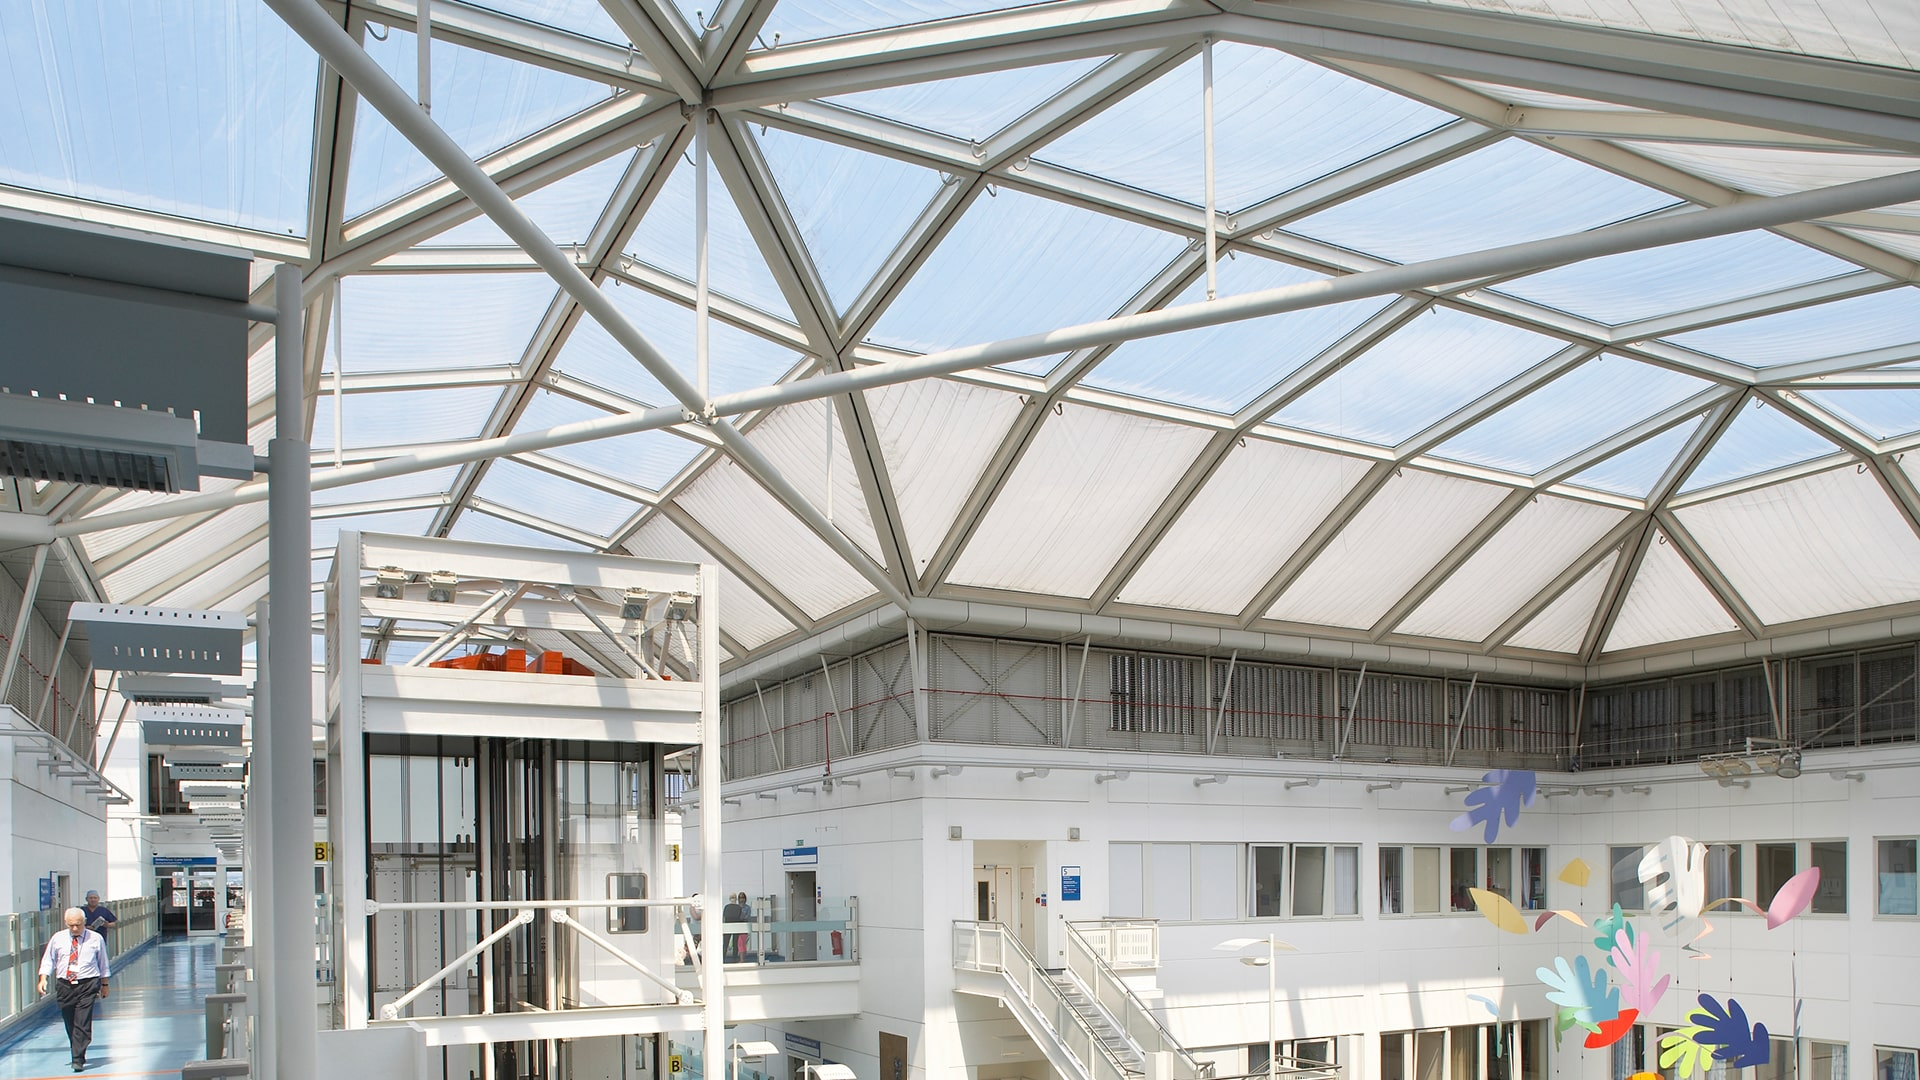 Build in 1990, Chelsea & Westminister Hospital is the oldest Texlon® ETFE project by Vector Foiltec in the United Kingdom.